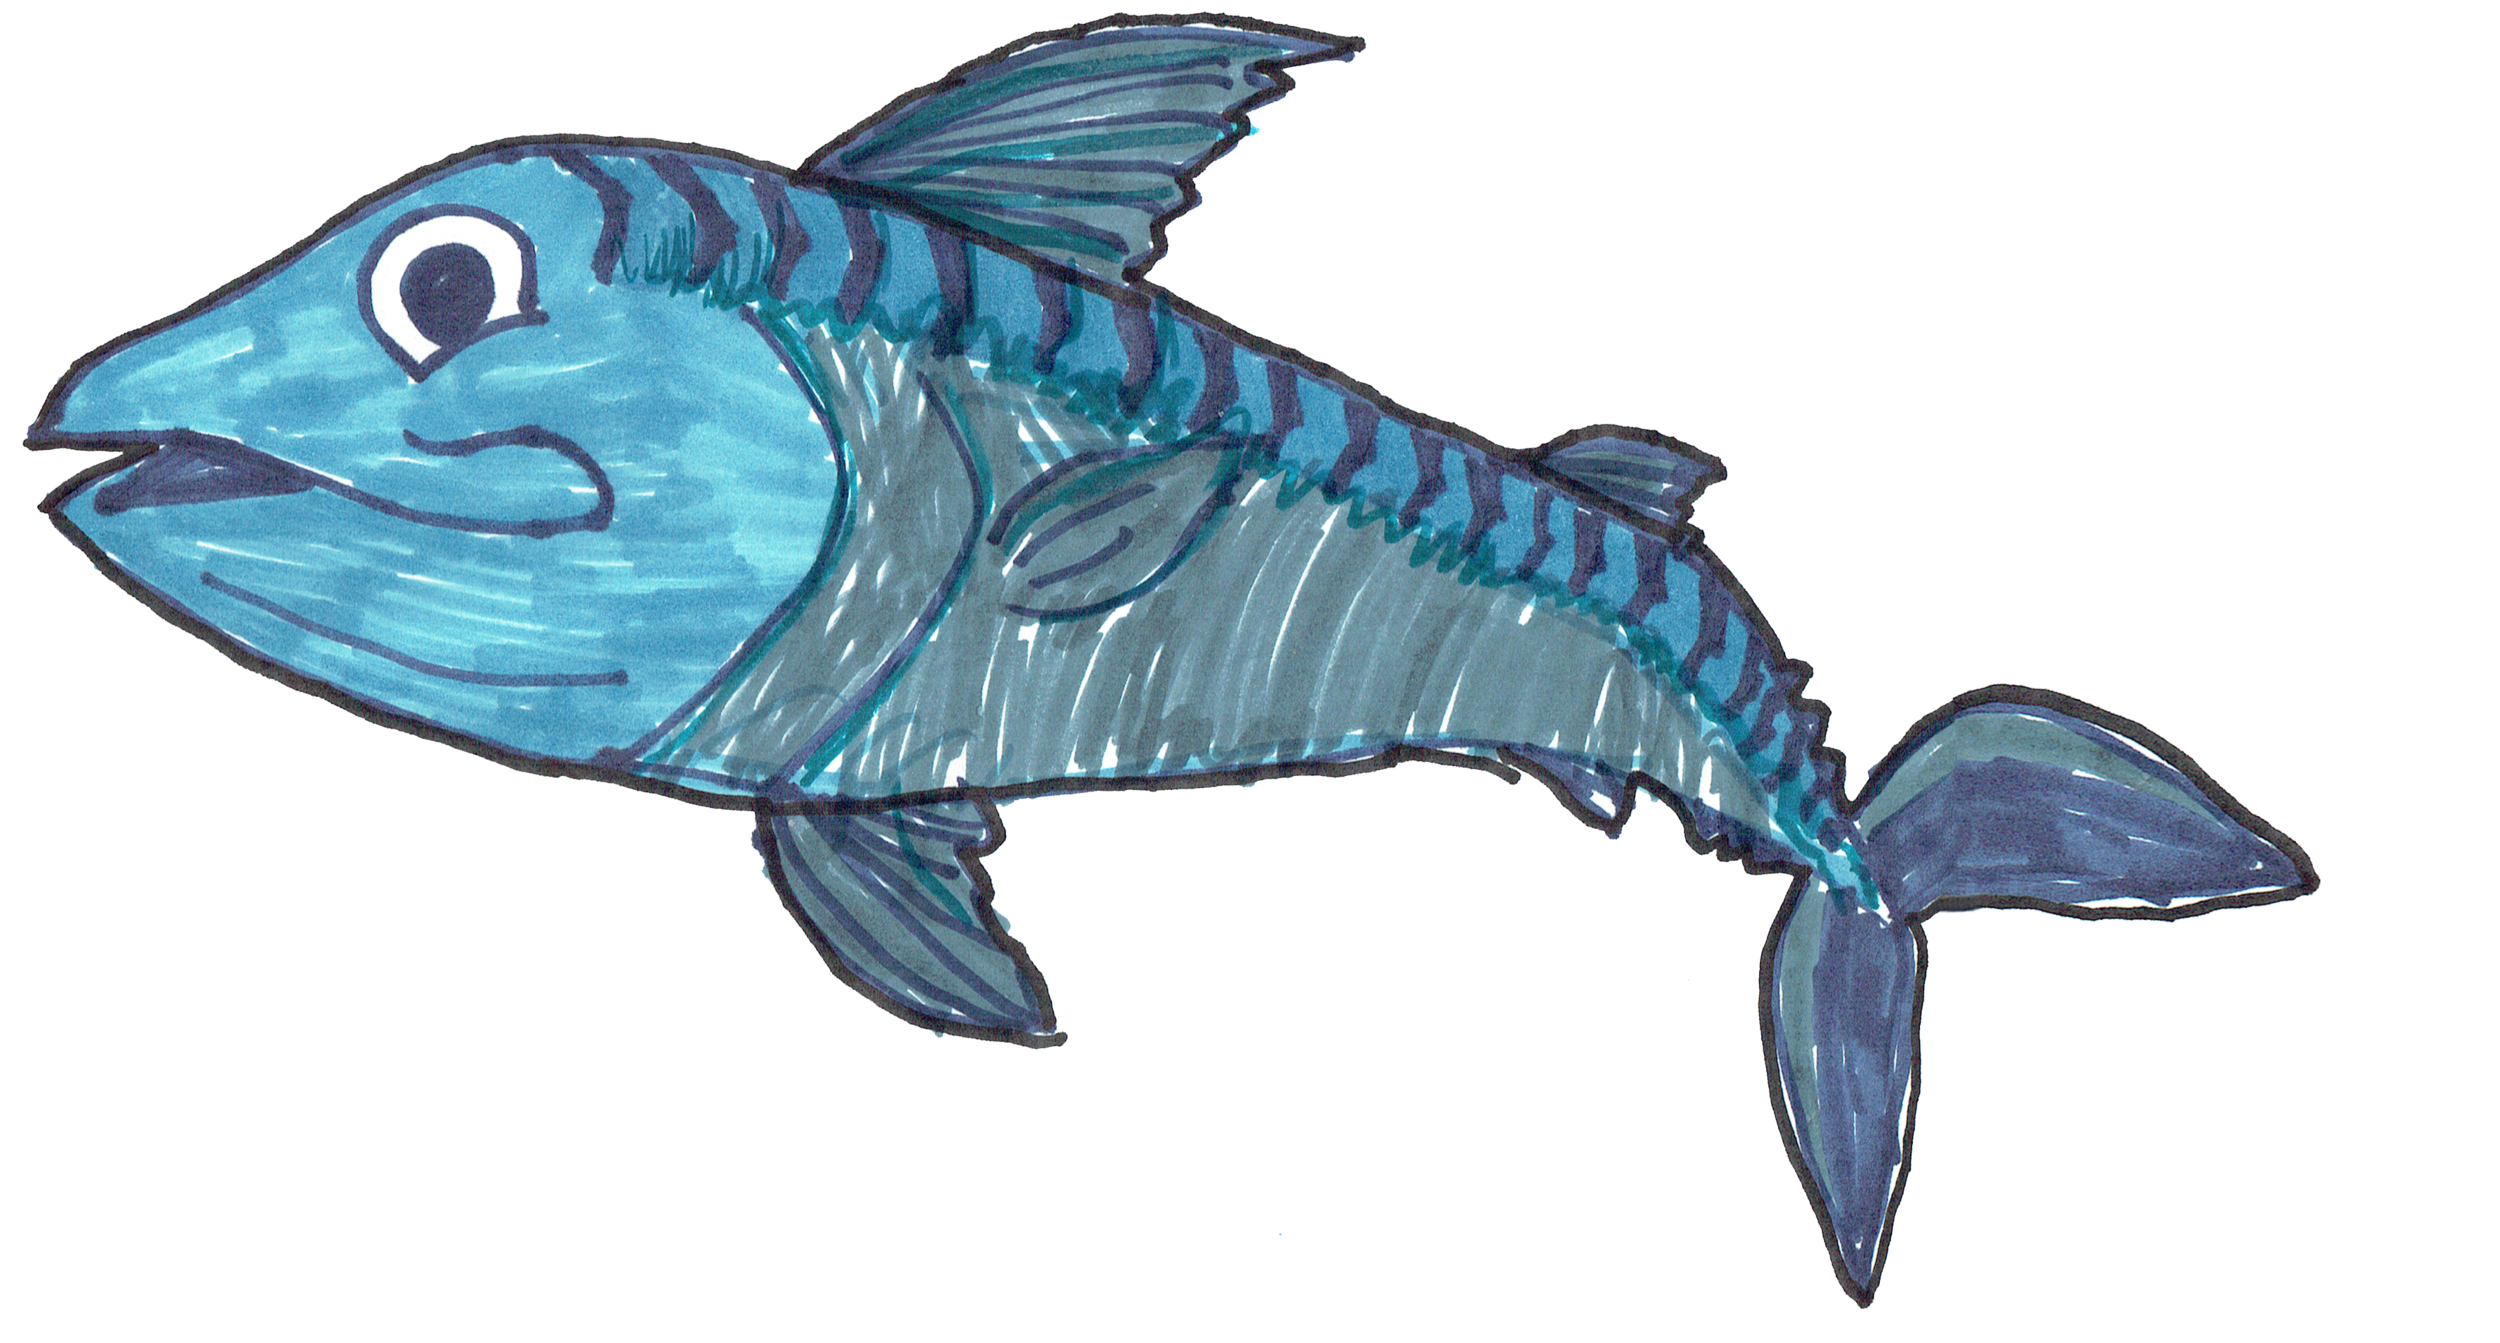 Mickey Mackerel drawn by Dillon Price (above) and Lacie Lace Fish drawn by Lacie Skinner (below) are two winning fish from our Kids Colouring Competition and have both featured on our Krispies Collectors Cards and our Menu.